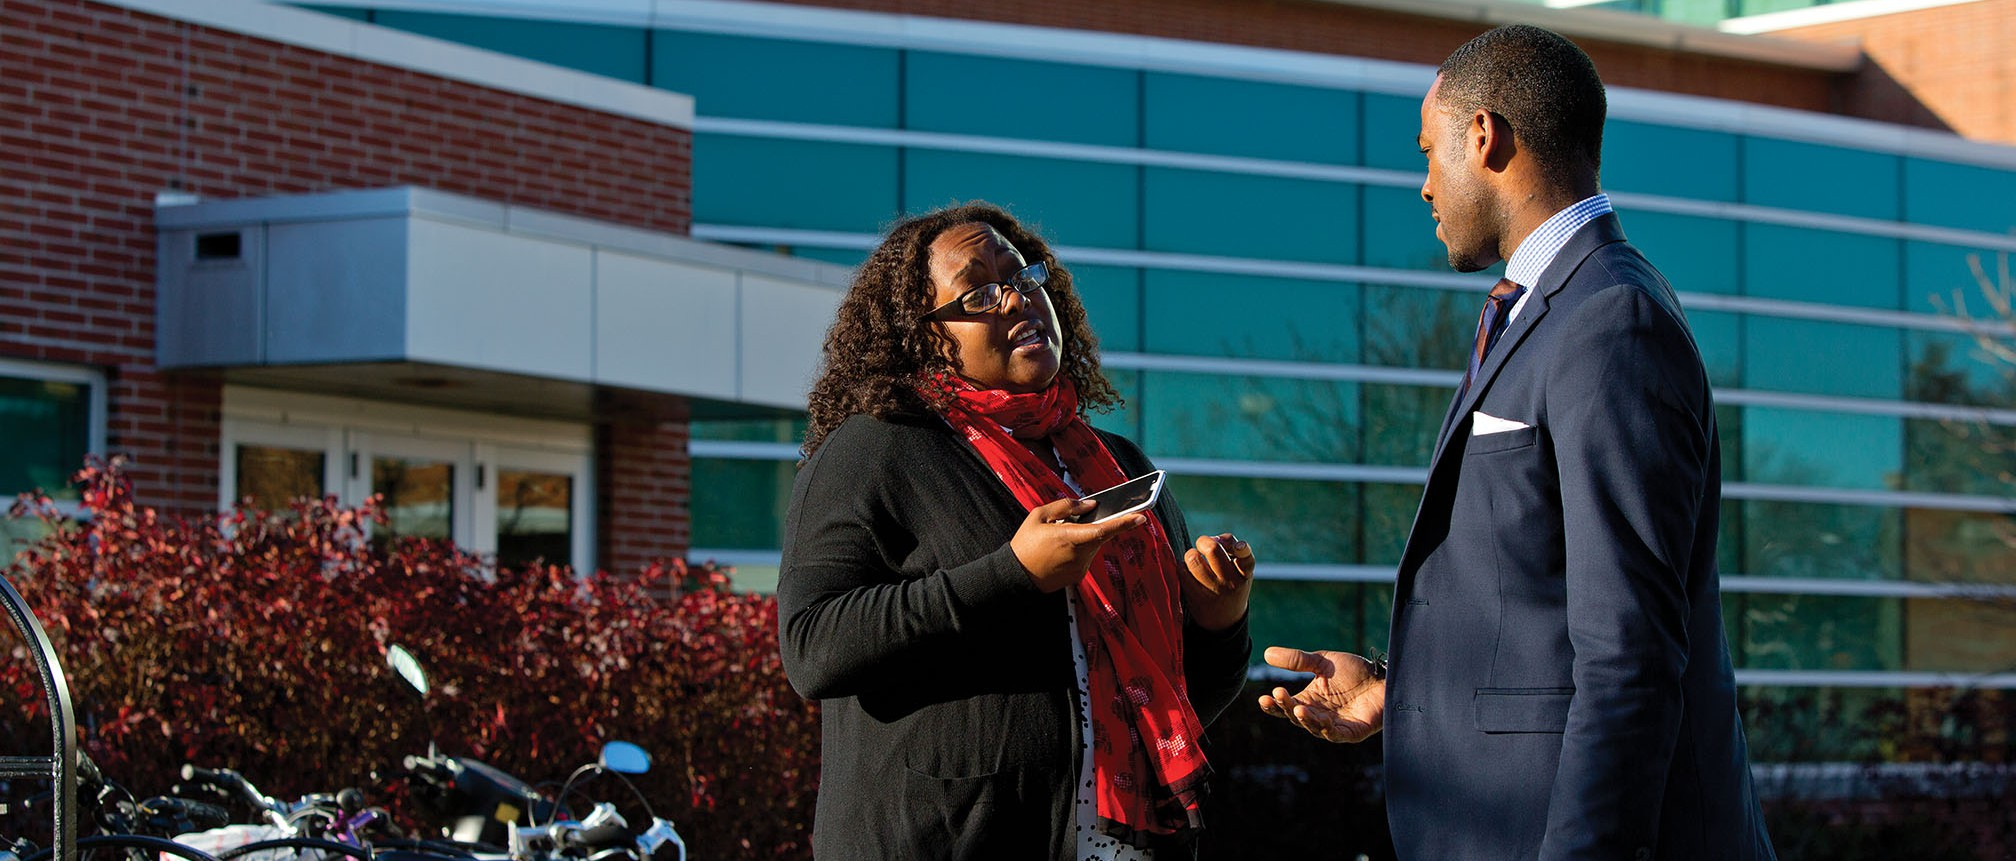 Range confers with Qiana Green, a doctoral student in the Higher, Adult and Lifelong Education program at Michigan State. Green has been a mentor and friend to Range since his arrival on the East Lansing campus.